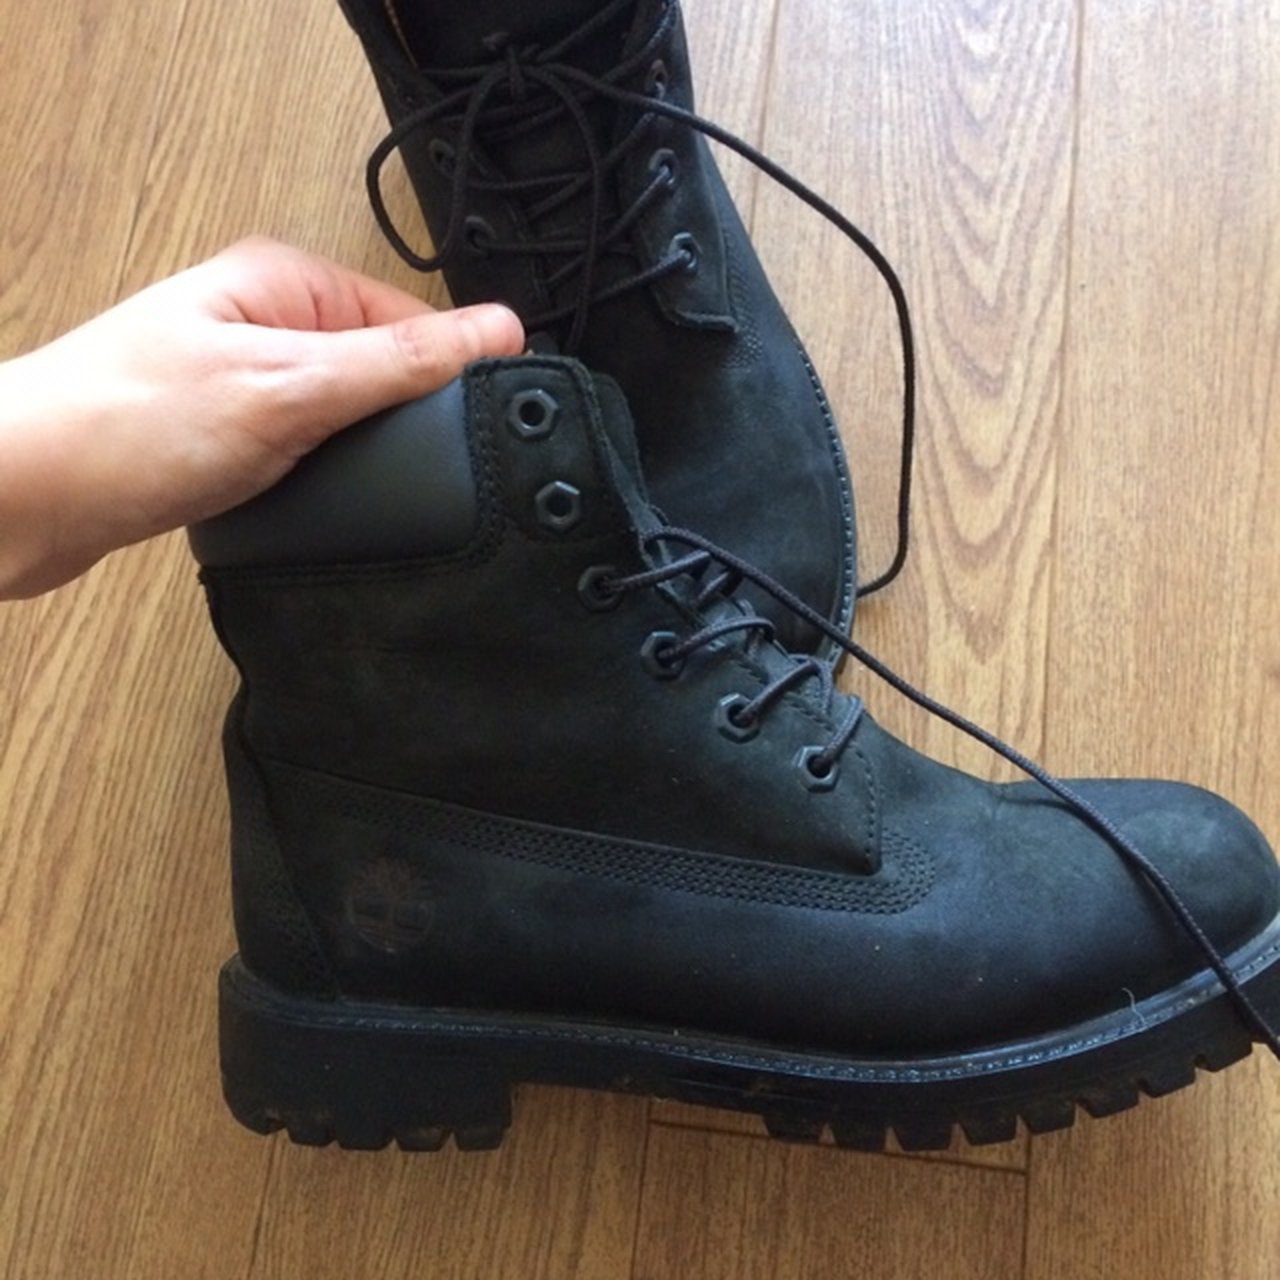 RESERVED Size 5.5 will fit a normal size 5. Black boots but - Depop 810ef442c